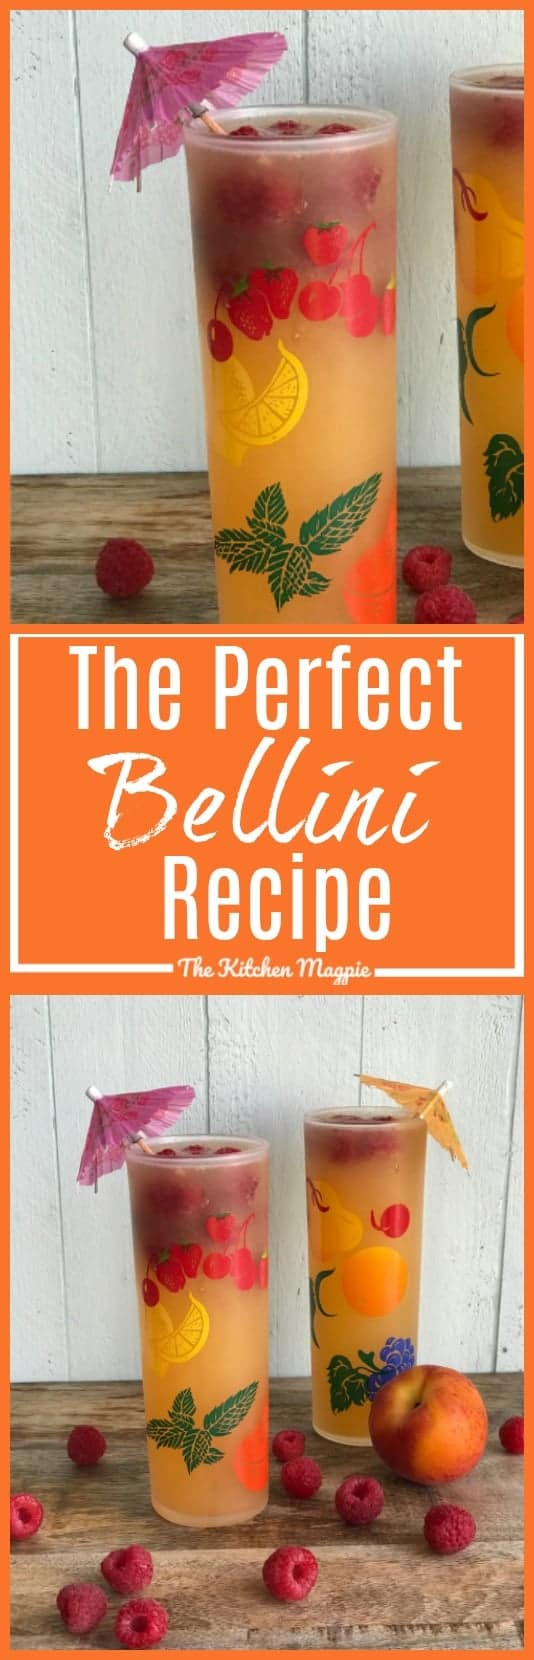 the perfect bellini recipe - pinterest